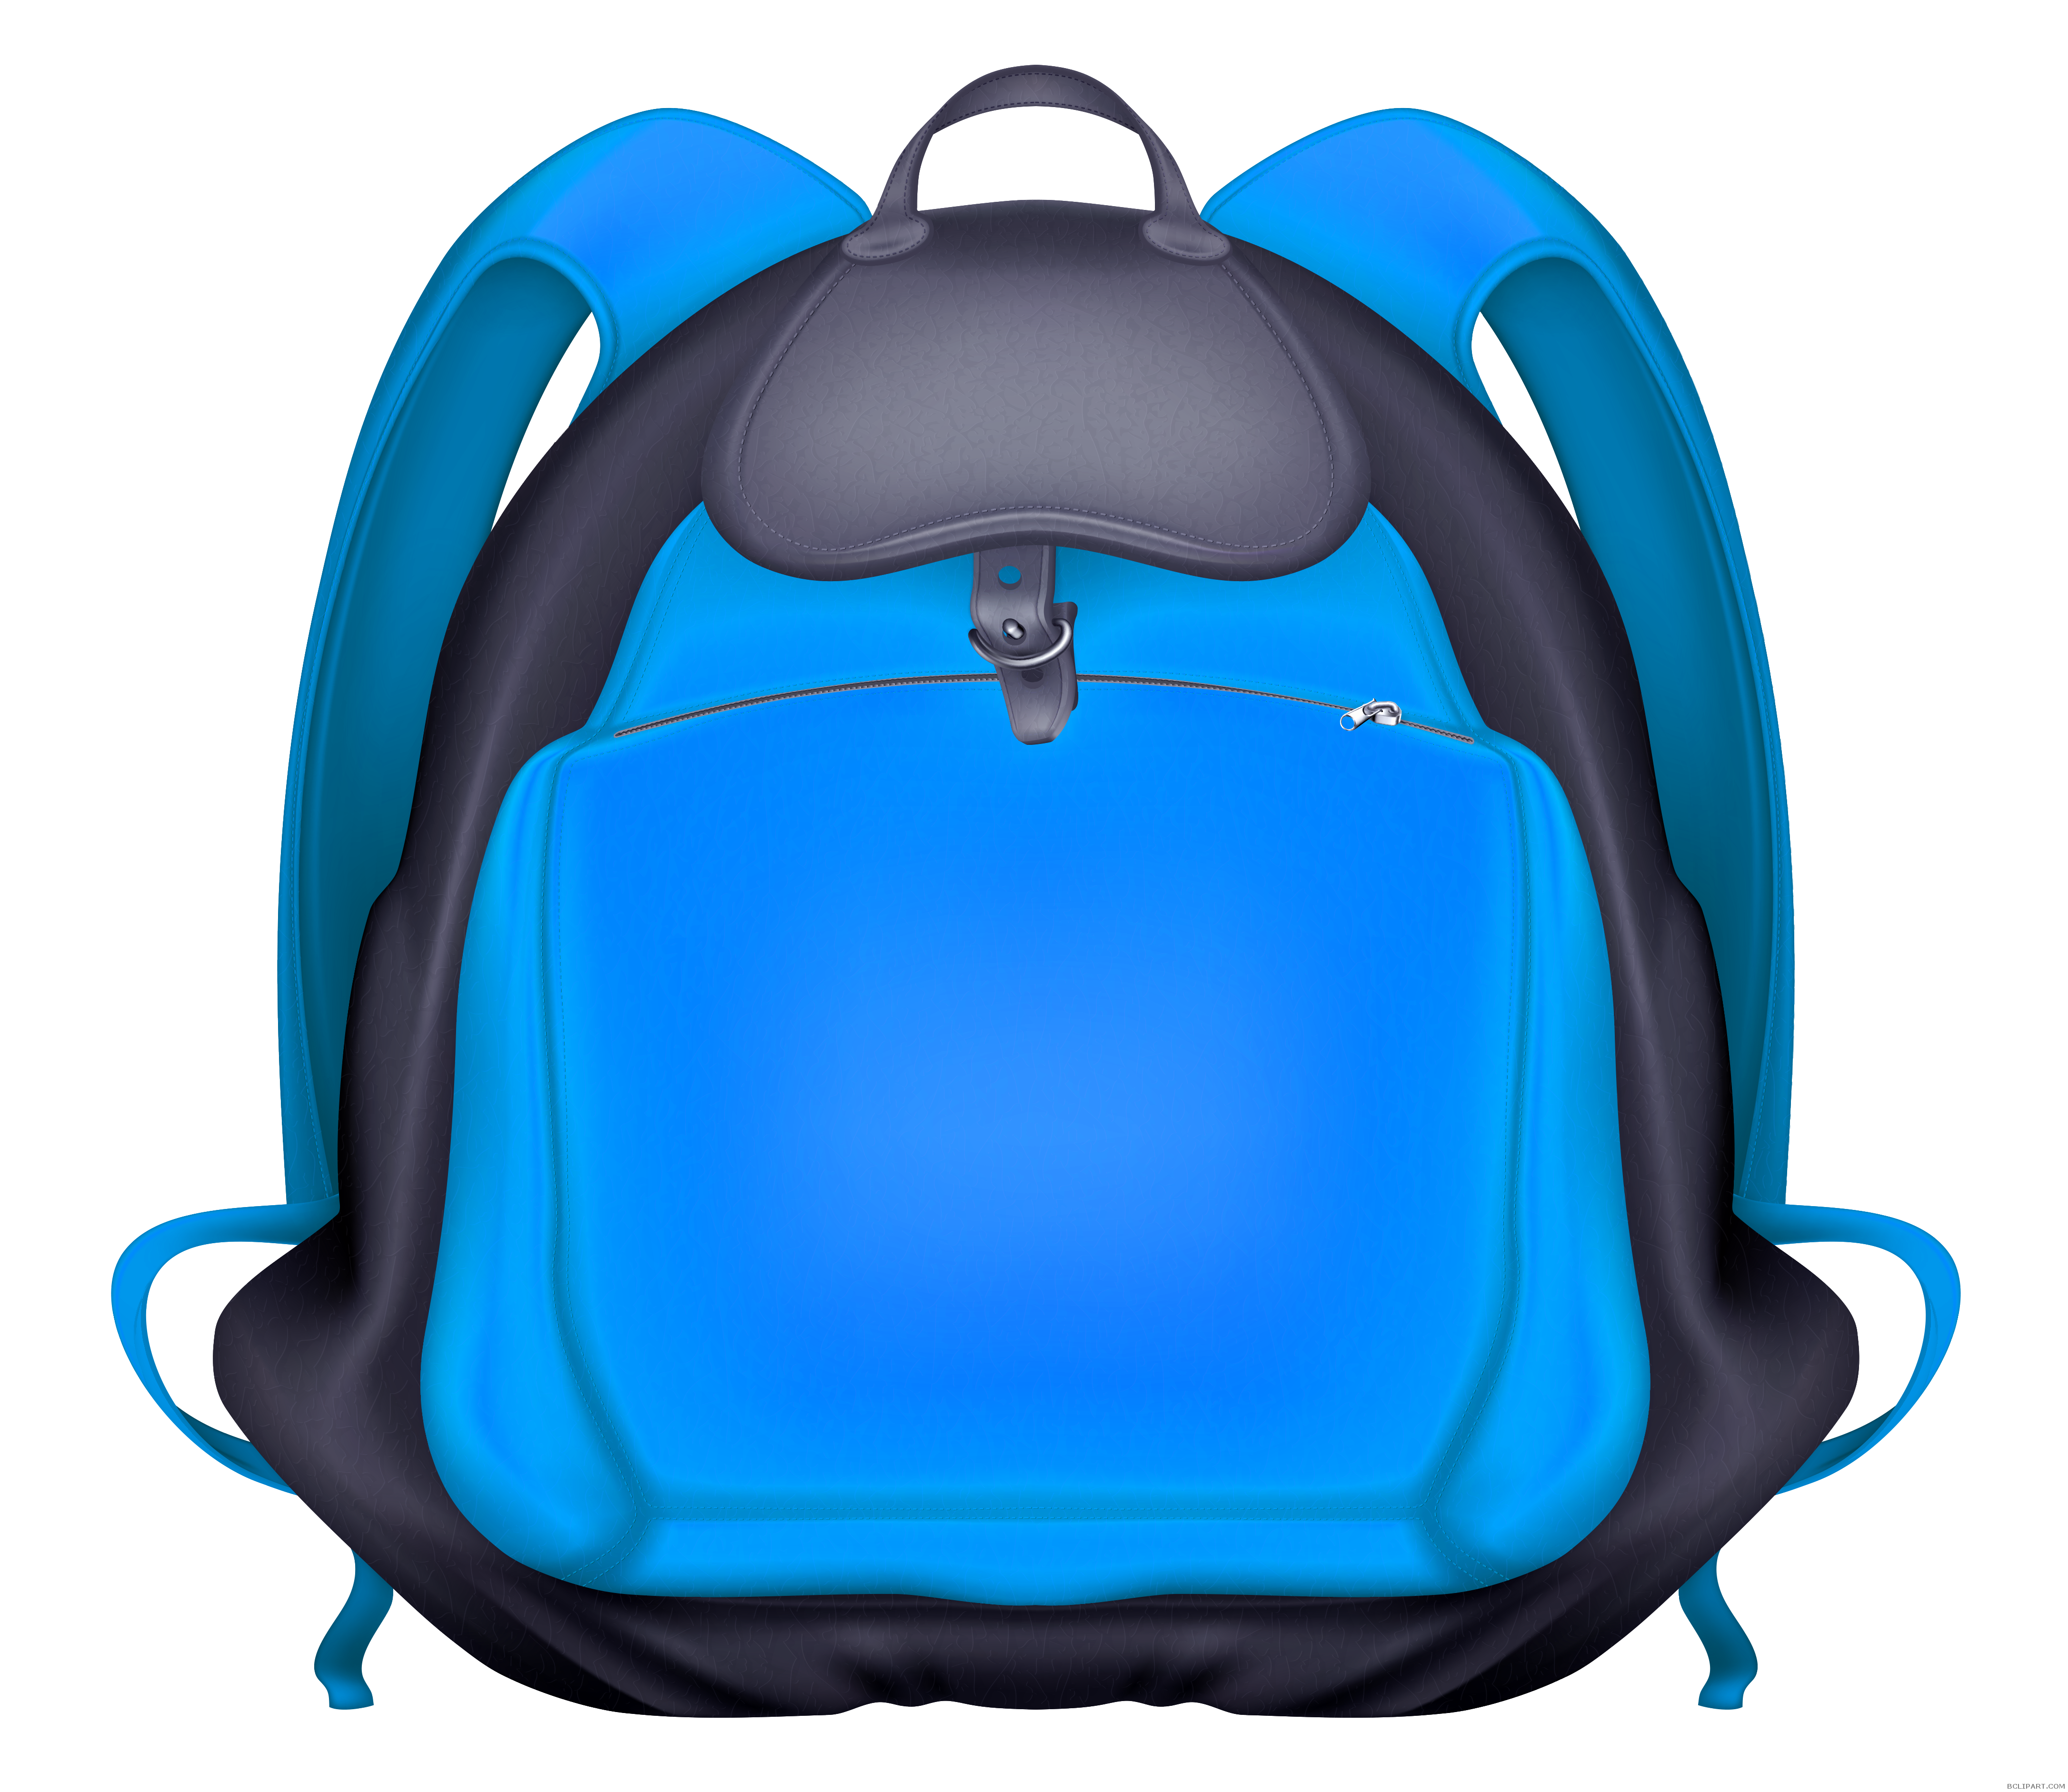 Bclipart tools free images. Clipart backpack school tool